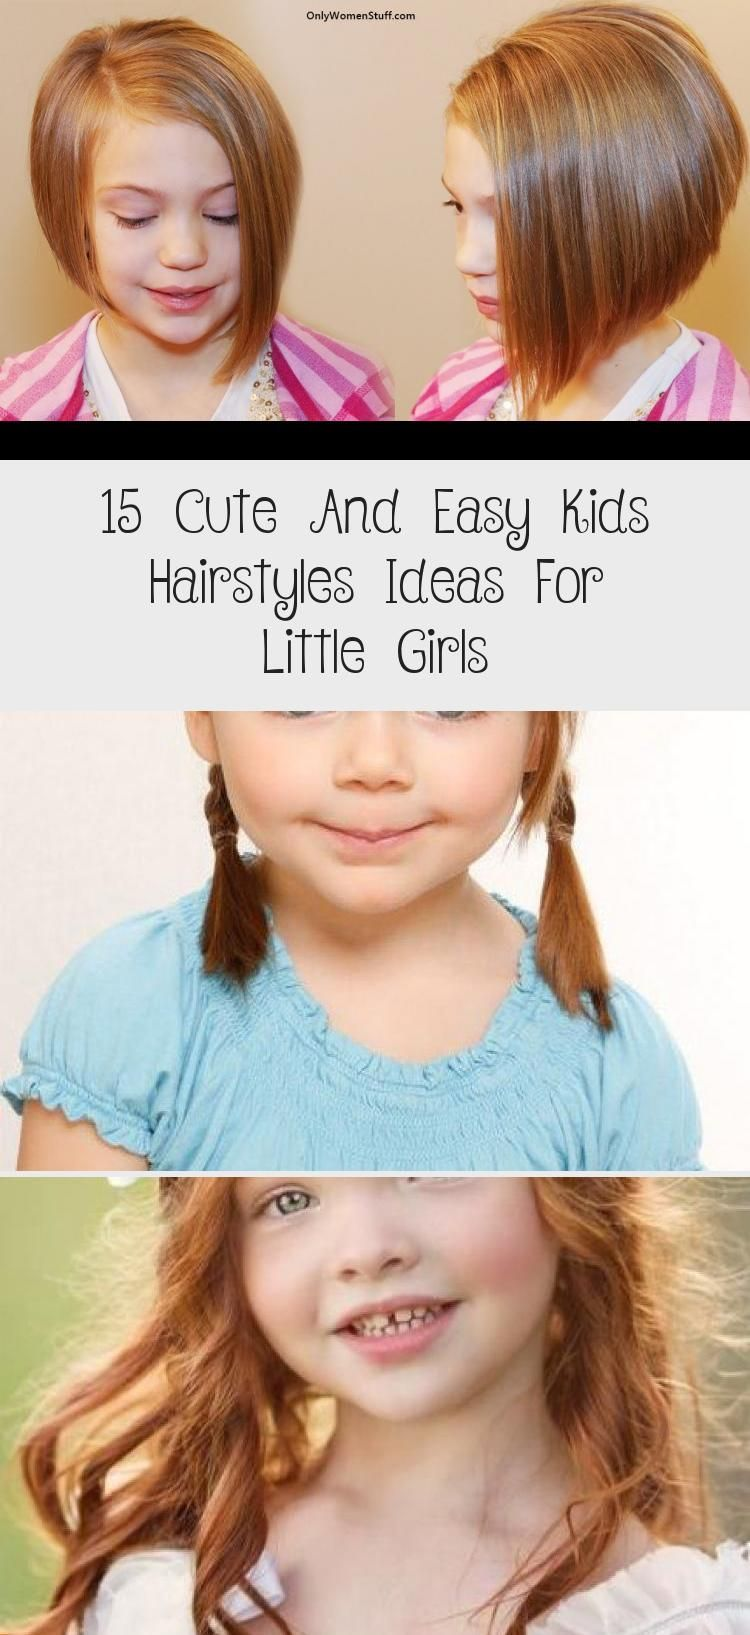 15 Cute And Easy Kids Hairstyles Ideas For Little Girls - health and diet fitness -  Simple Hairstyl...